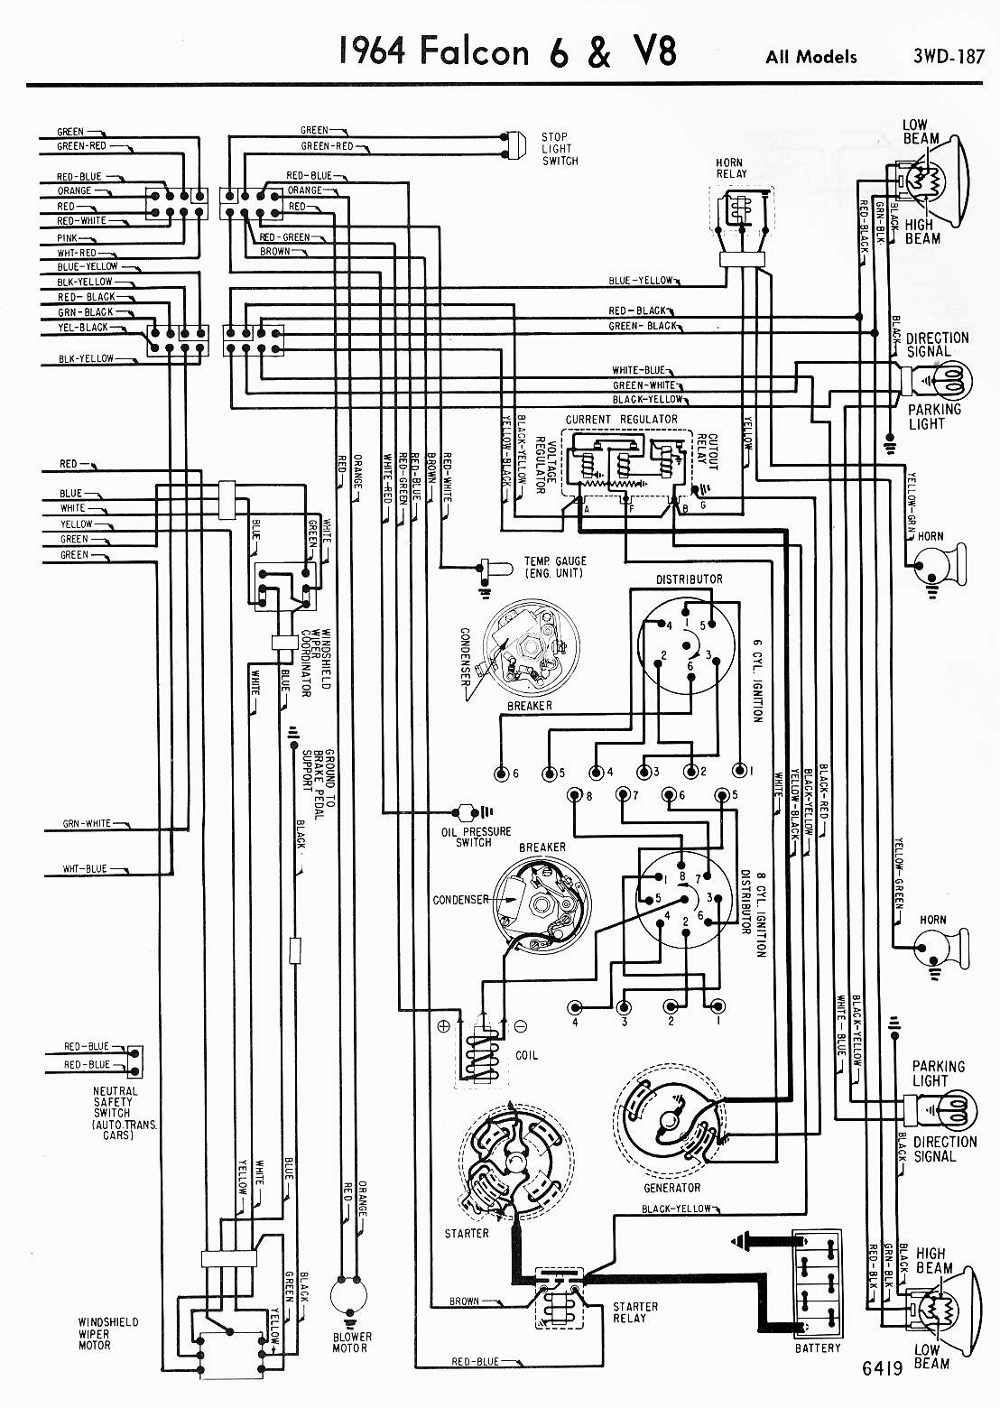 hight resolution of 1964 ford falcon wiring diagram wiring diagrams of 1964 ford 6 and v8 falcon all models part 2